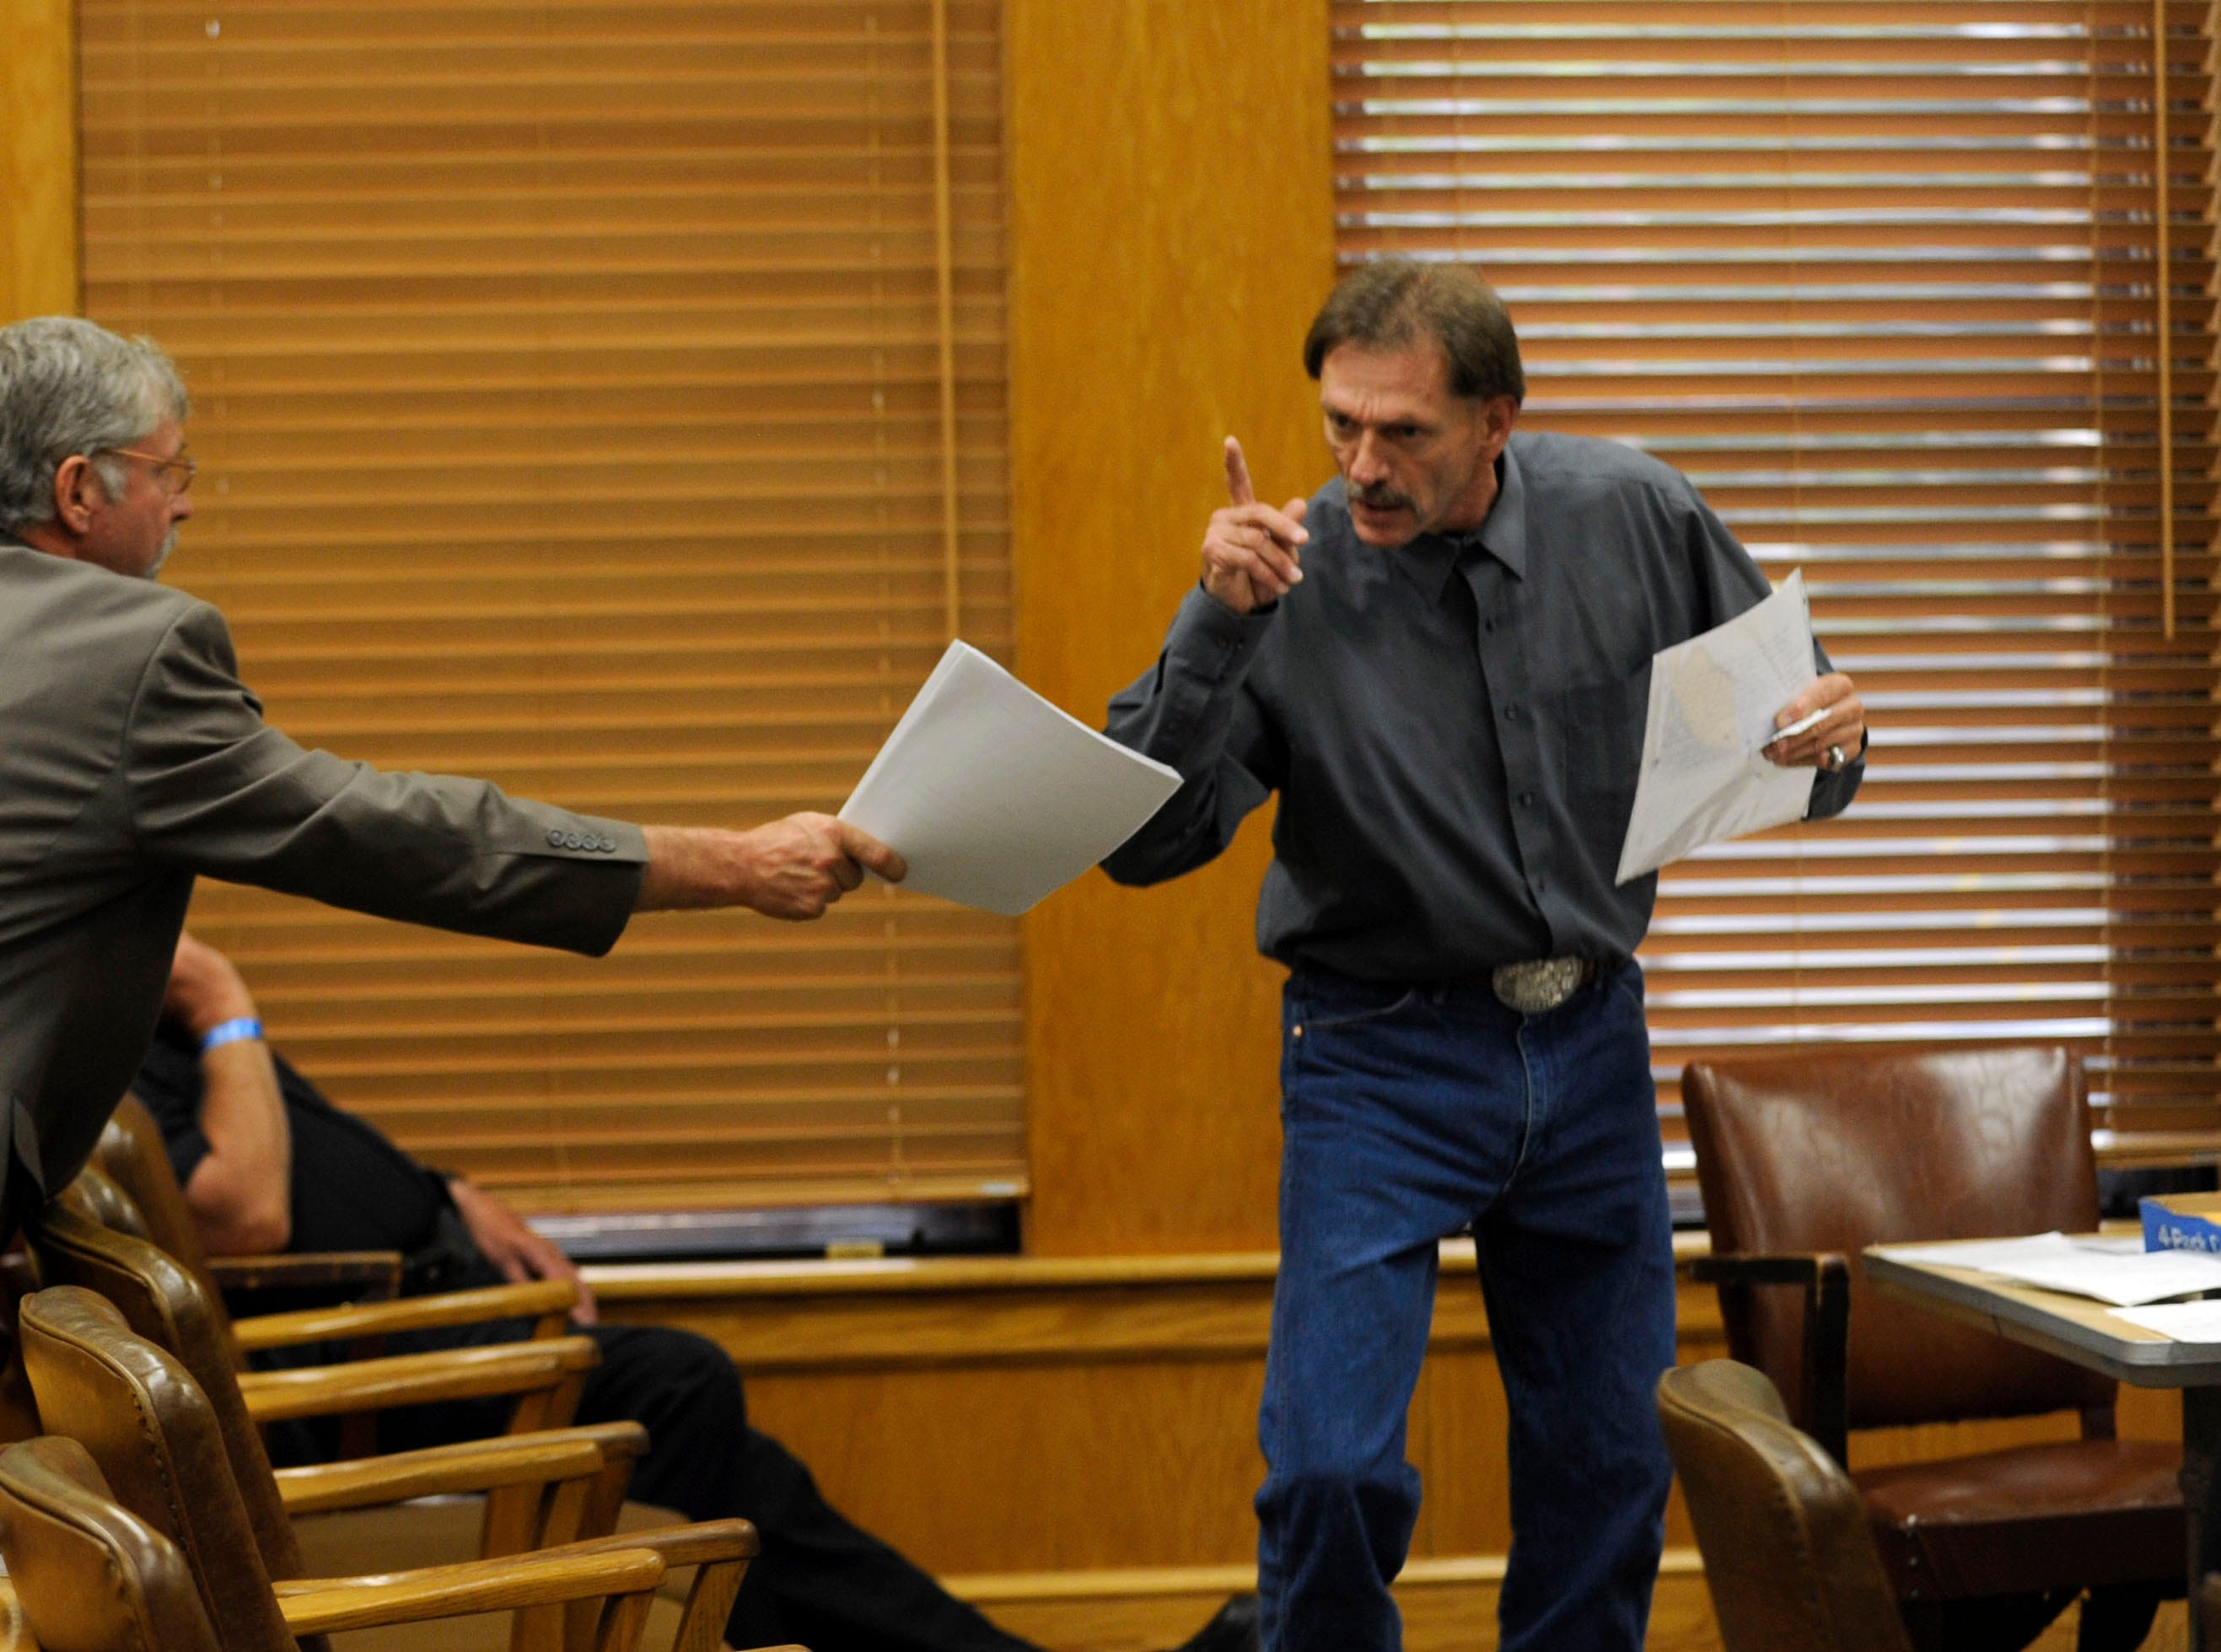 Clifford Leon Houston, right, stops mid-sentence to look at a note from his brother Rocky while arguing his case in Roane County Circuit Court Friday, Jul. 2, 2010. Leon Houston is accusing an ongoing conspiracy against him and his family. Senior Judge Walter Kurtz refused to recuse himself and reserved judgment on the lawsuit.